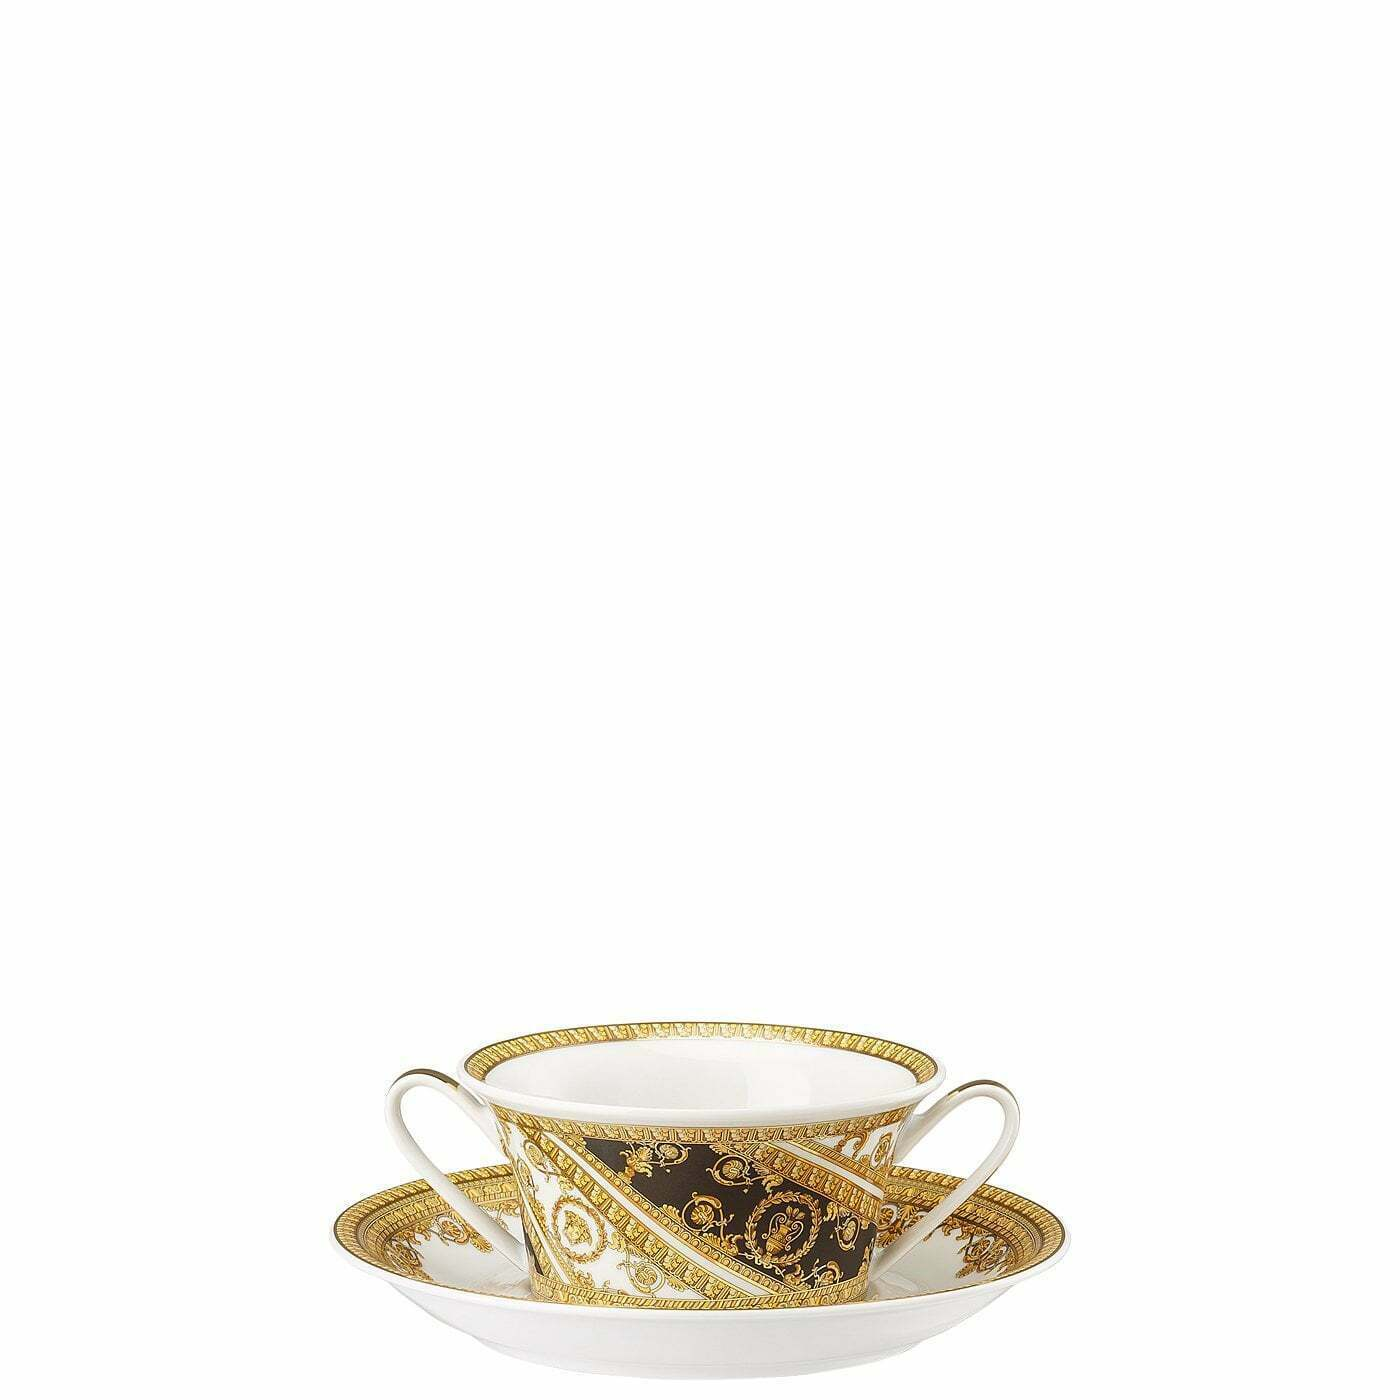 Primary image for Versace by Rosenthal I Love Baroque Creamsoup Cup and saucer